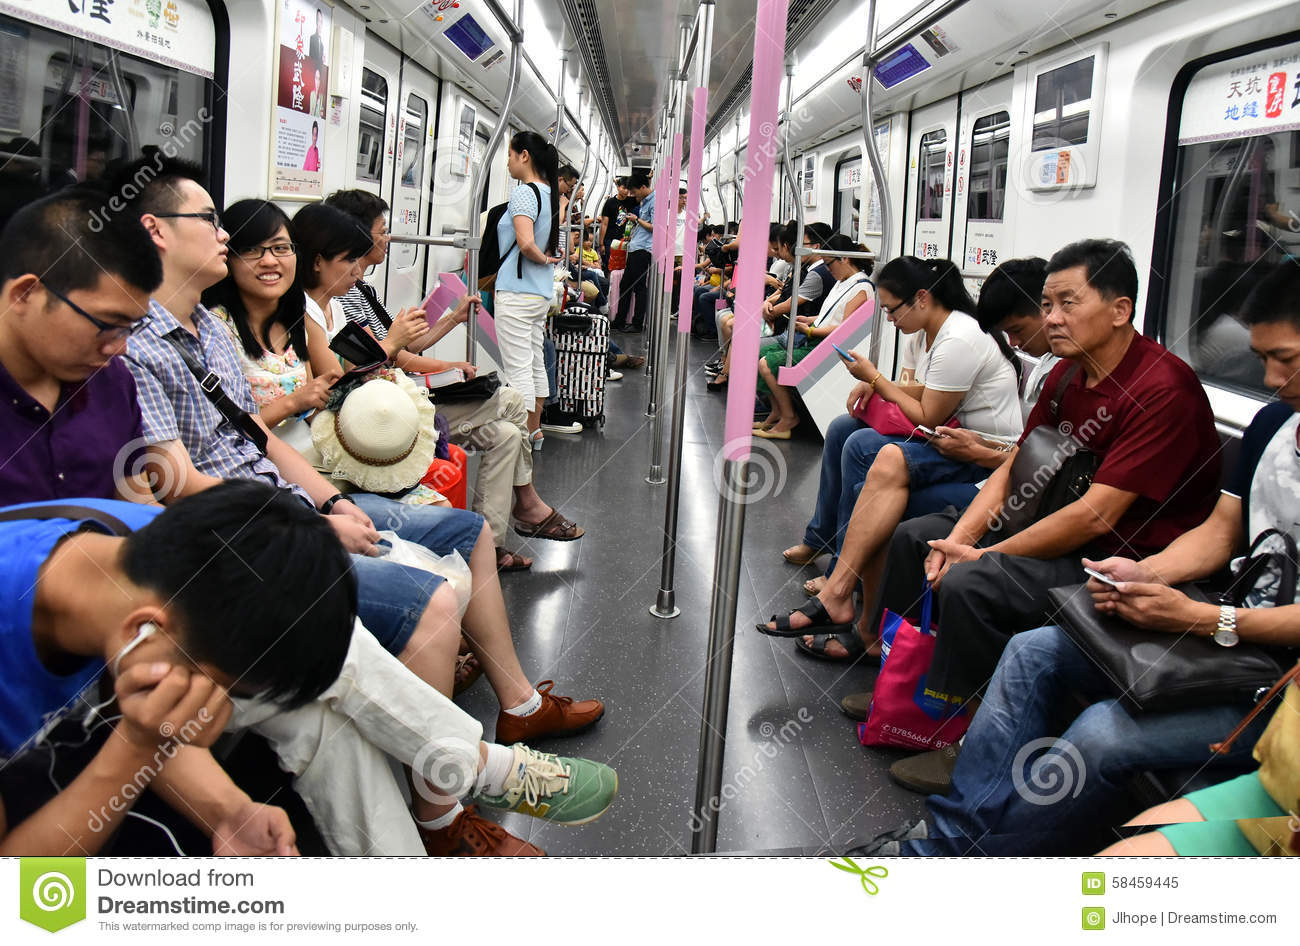 People In Subway Train Editorial Image - Image: 58459445